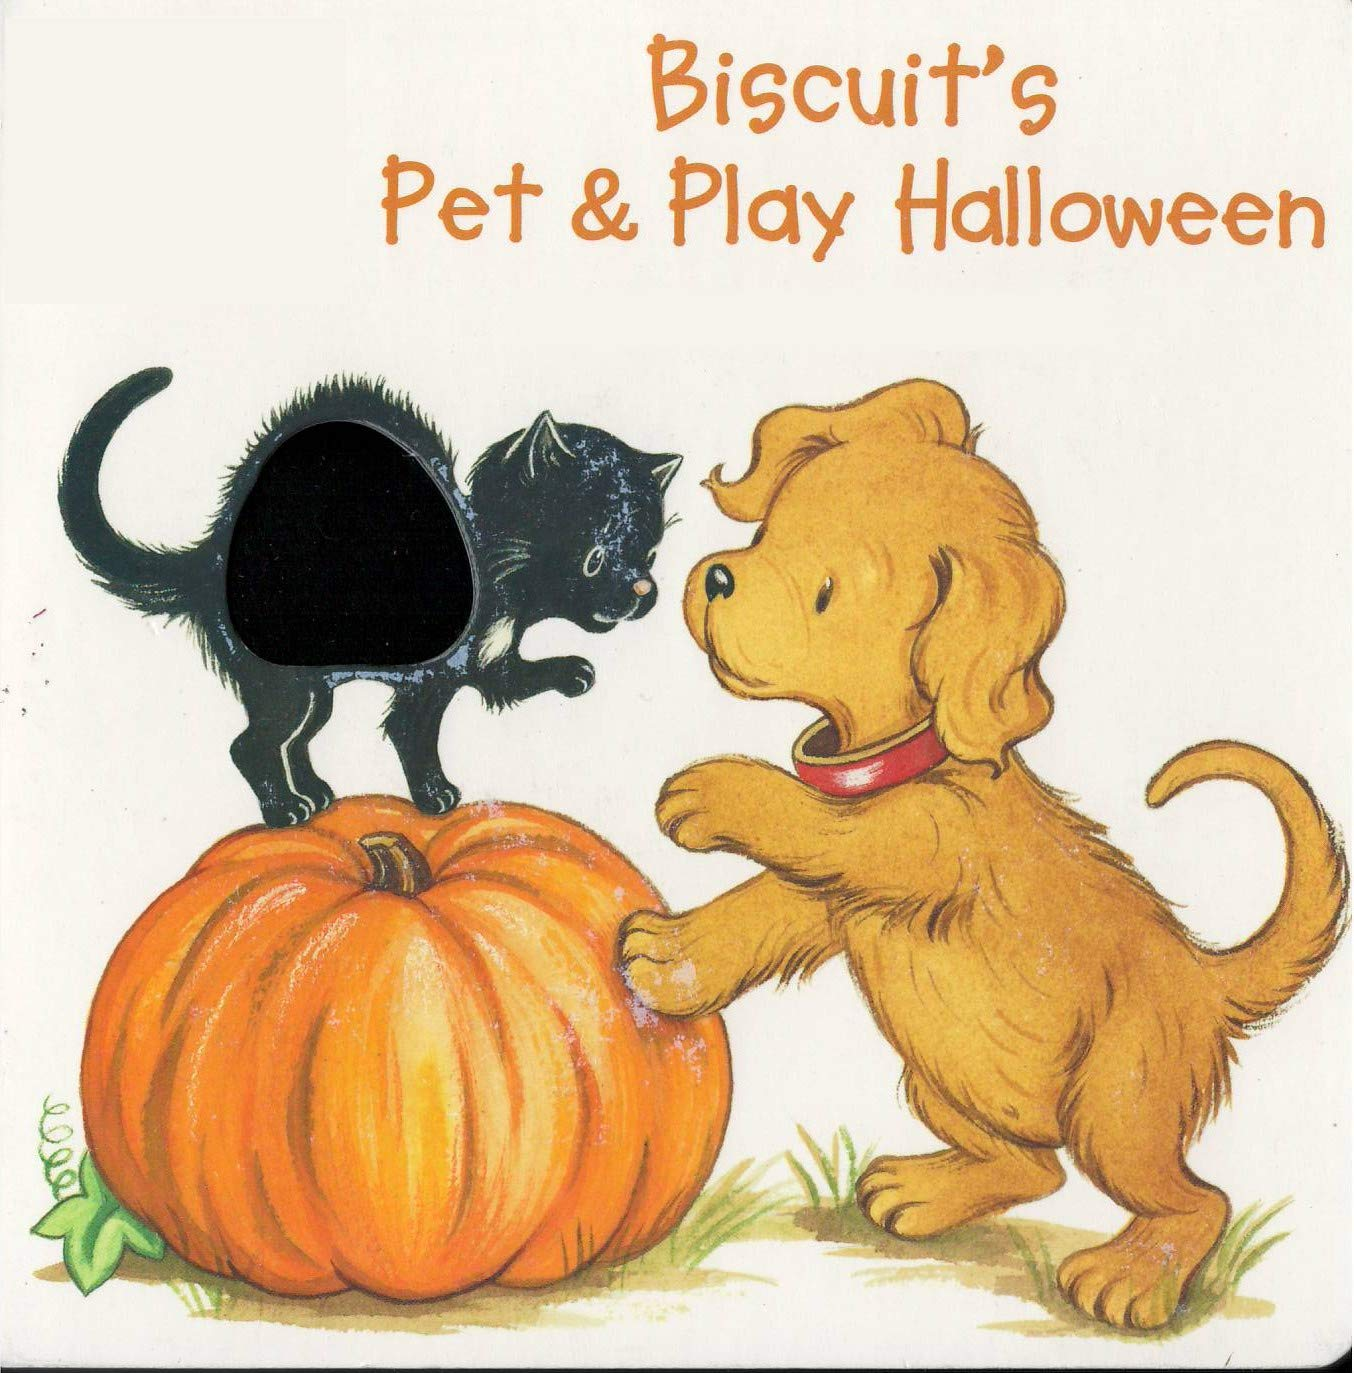 Biscuit s Pet Play Halloween: Recommended for classic children s picture books